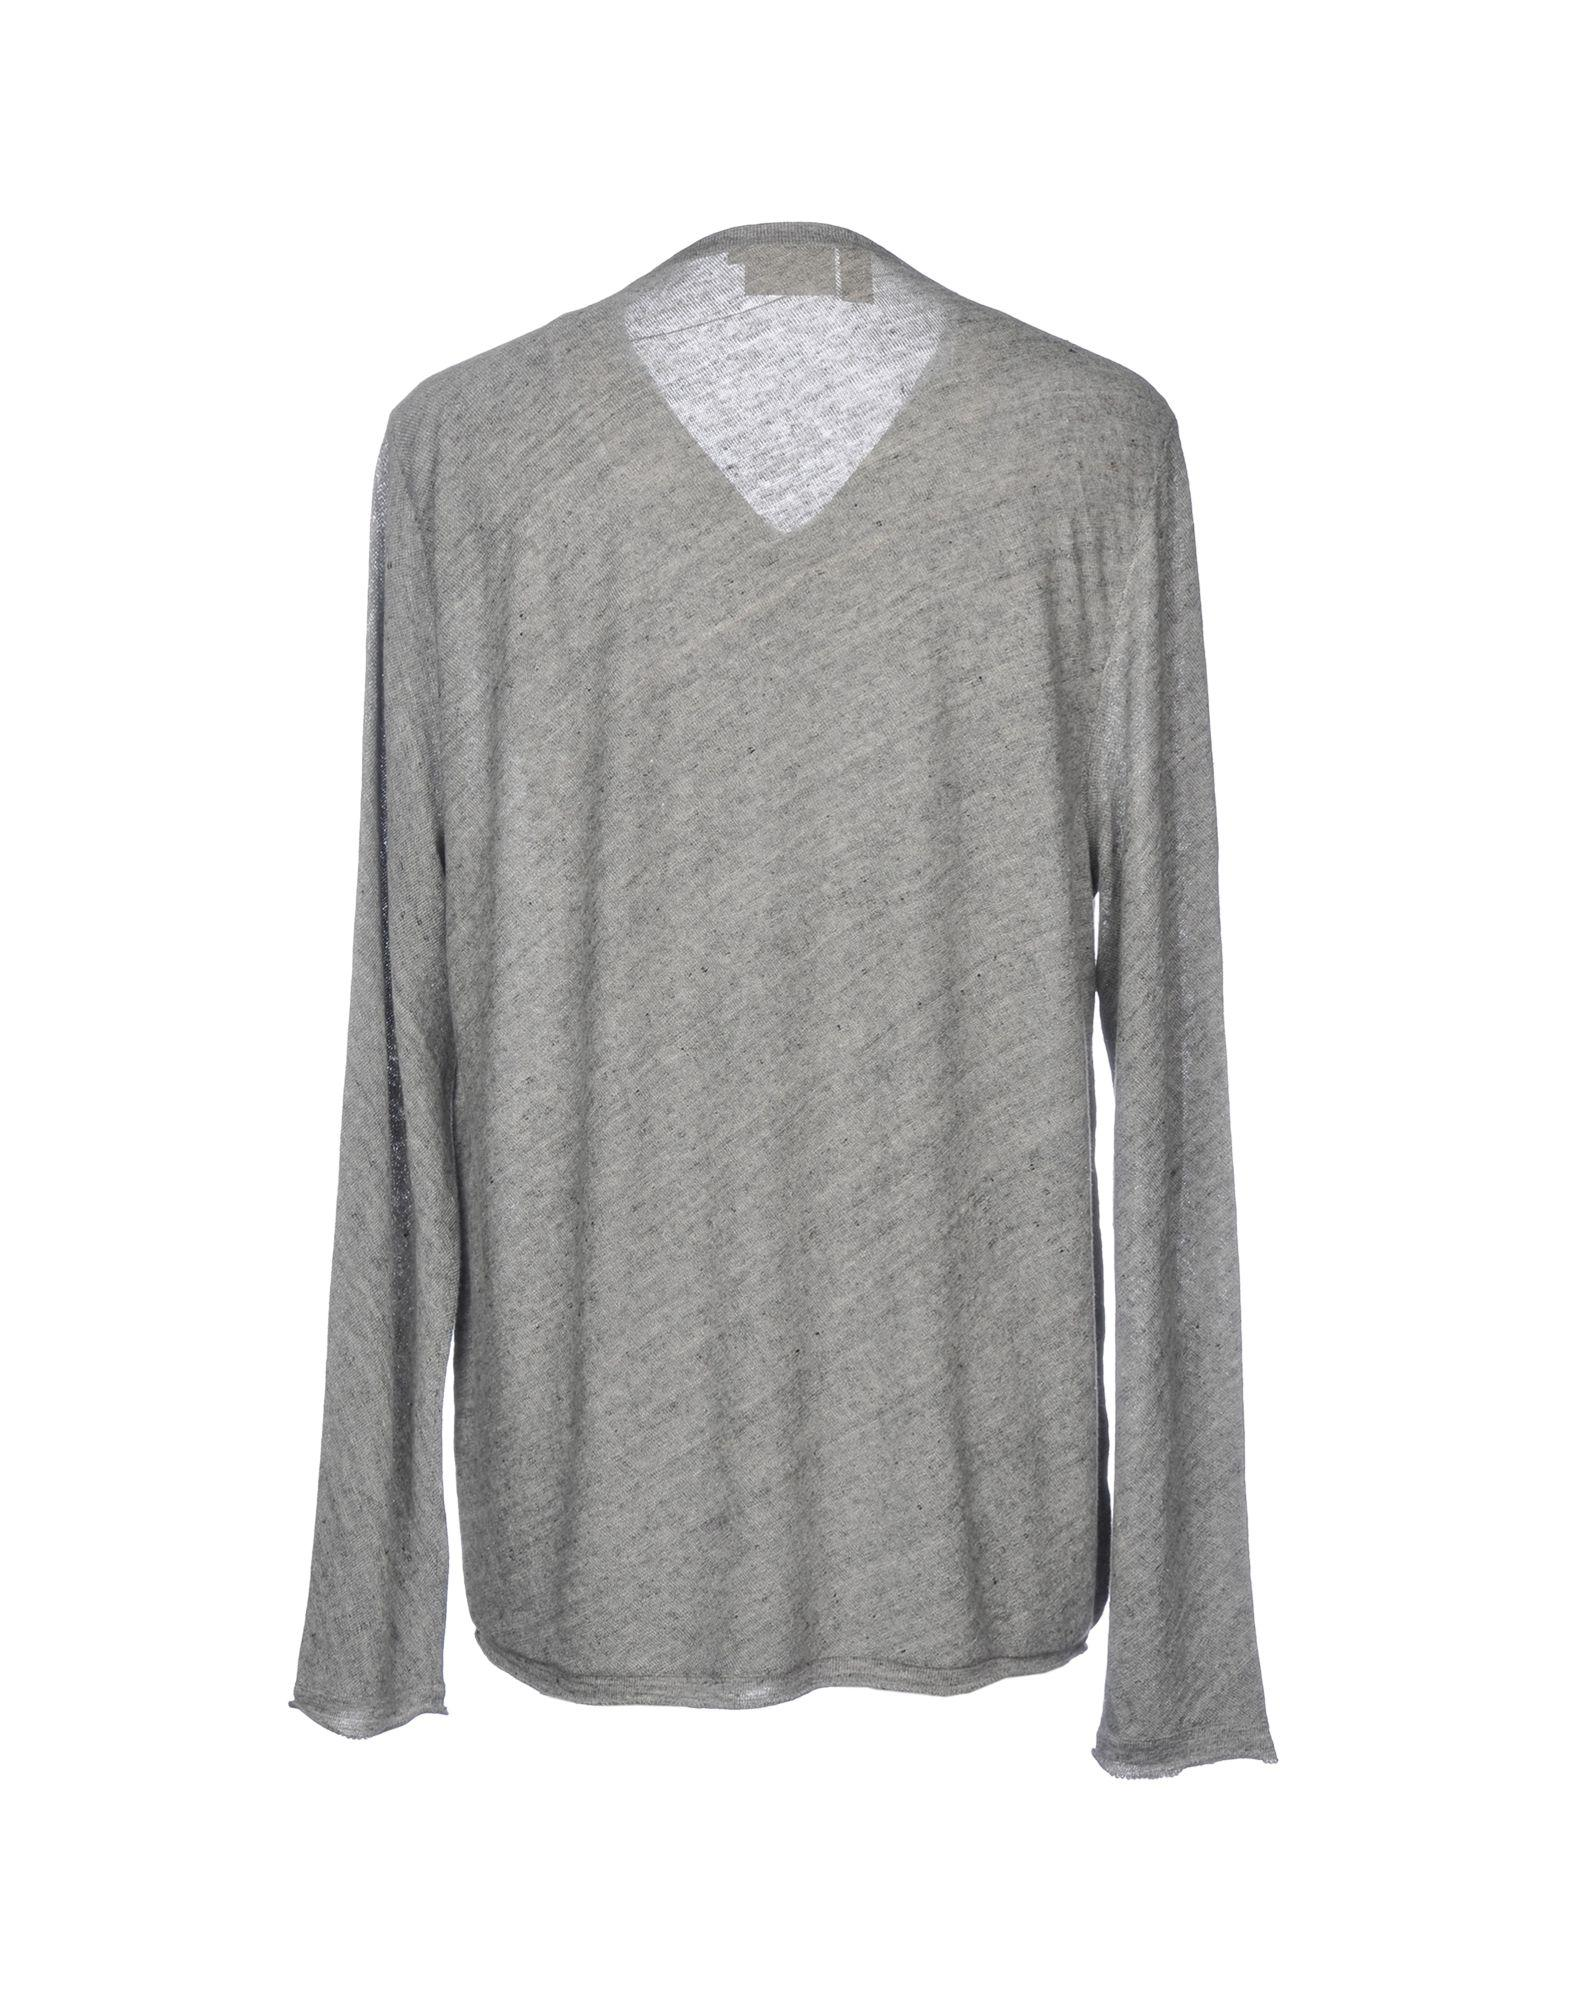 5bee6e9a8f3 Lyst - DKNY Sweater in Gray for Men